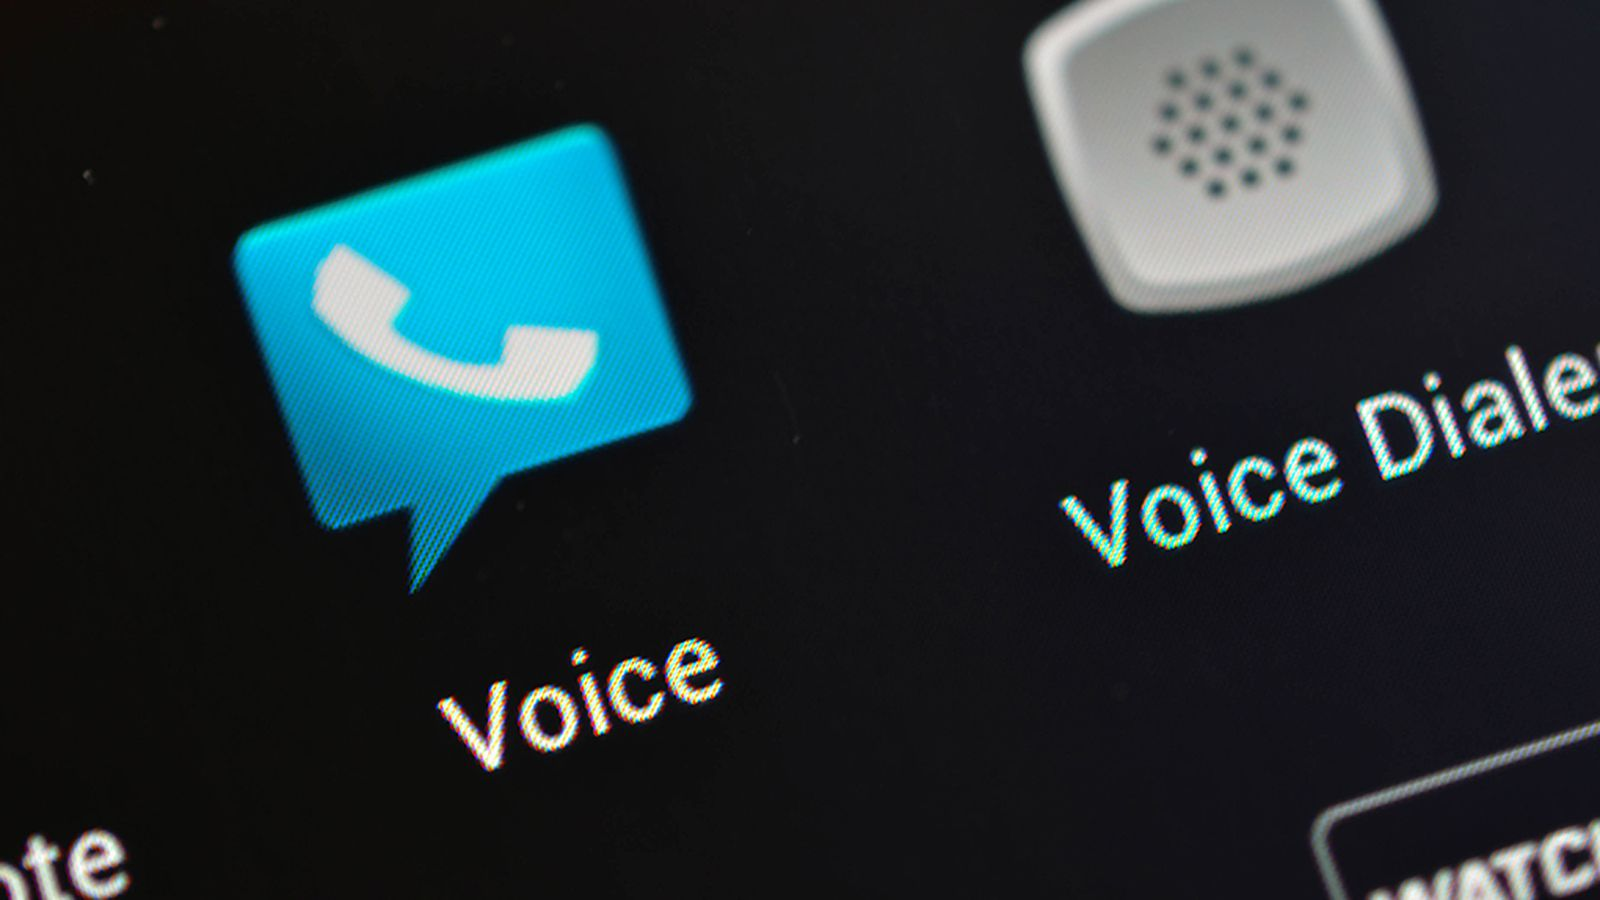 Some Google Voice users are having issues receiving text messages